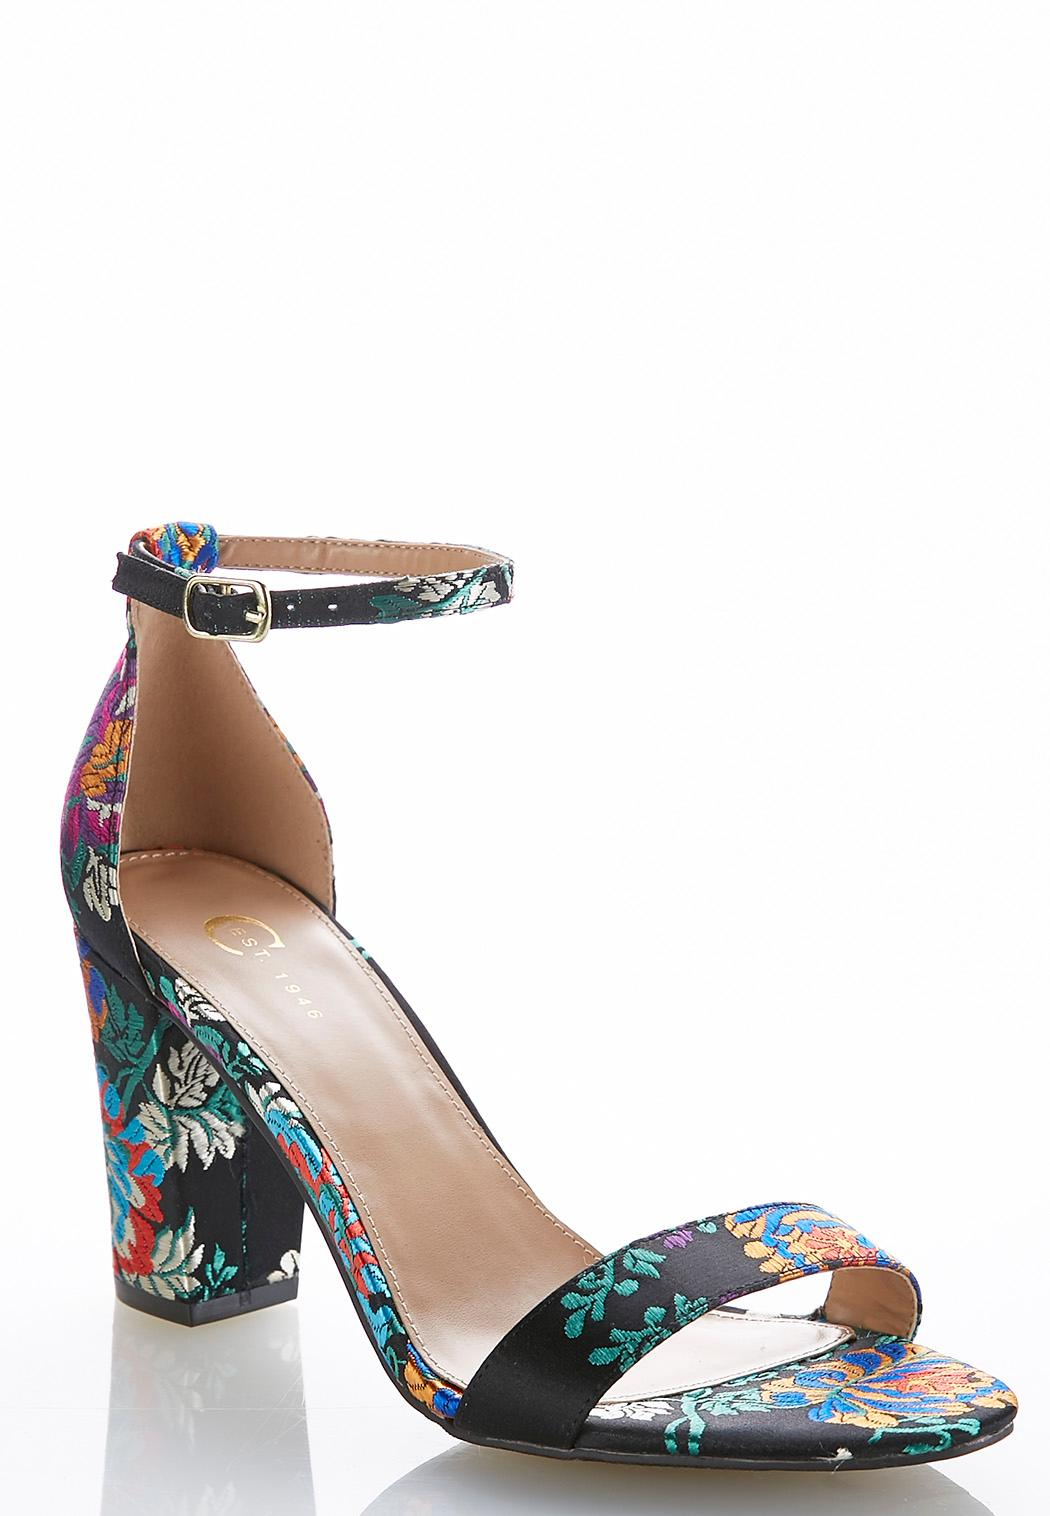 Floral Block Heeled Sandals Sandals Cato Fashions - What is commercial invoice shoe stores online